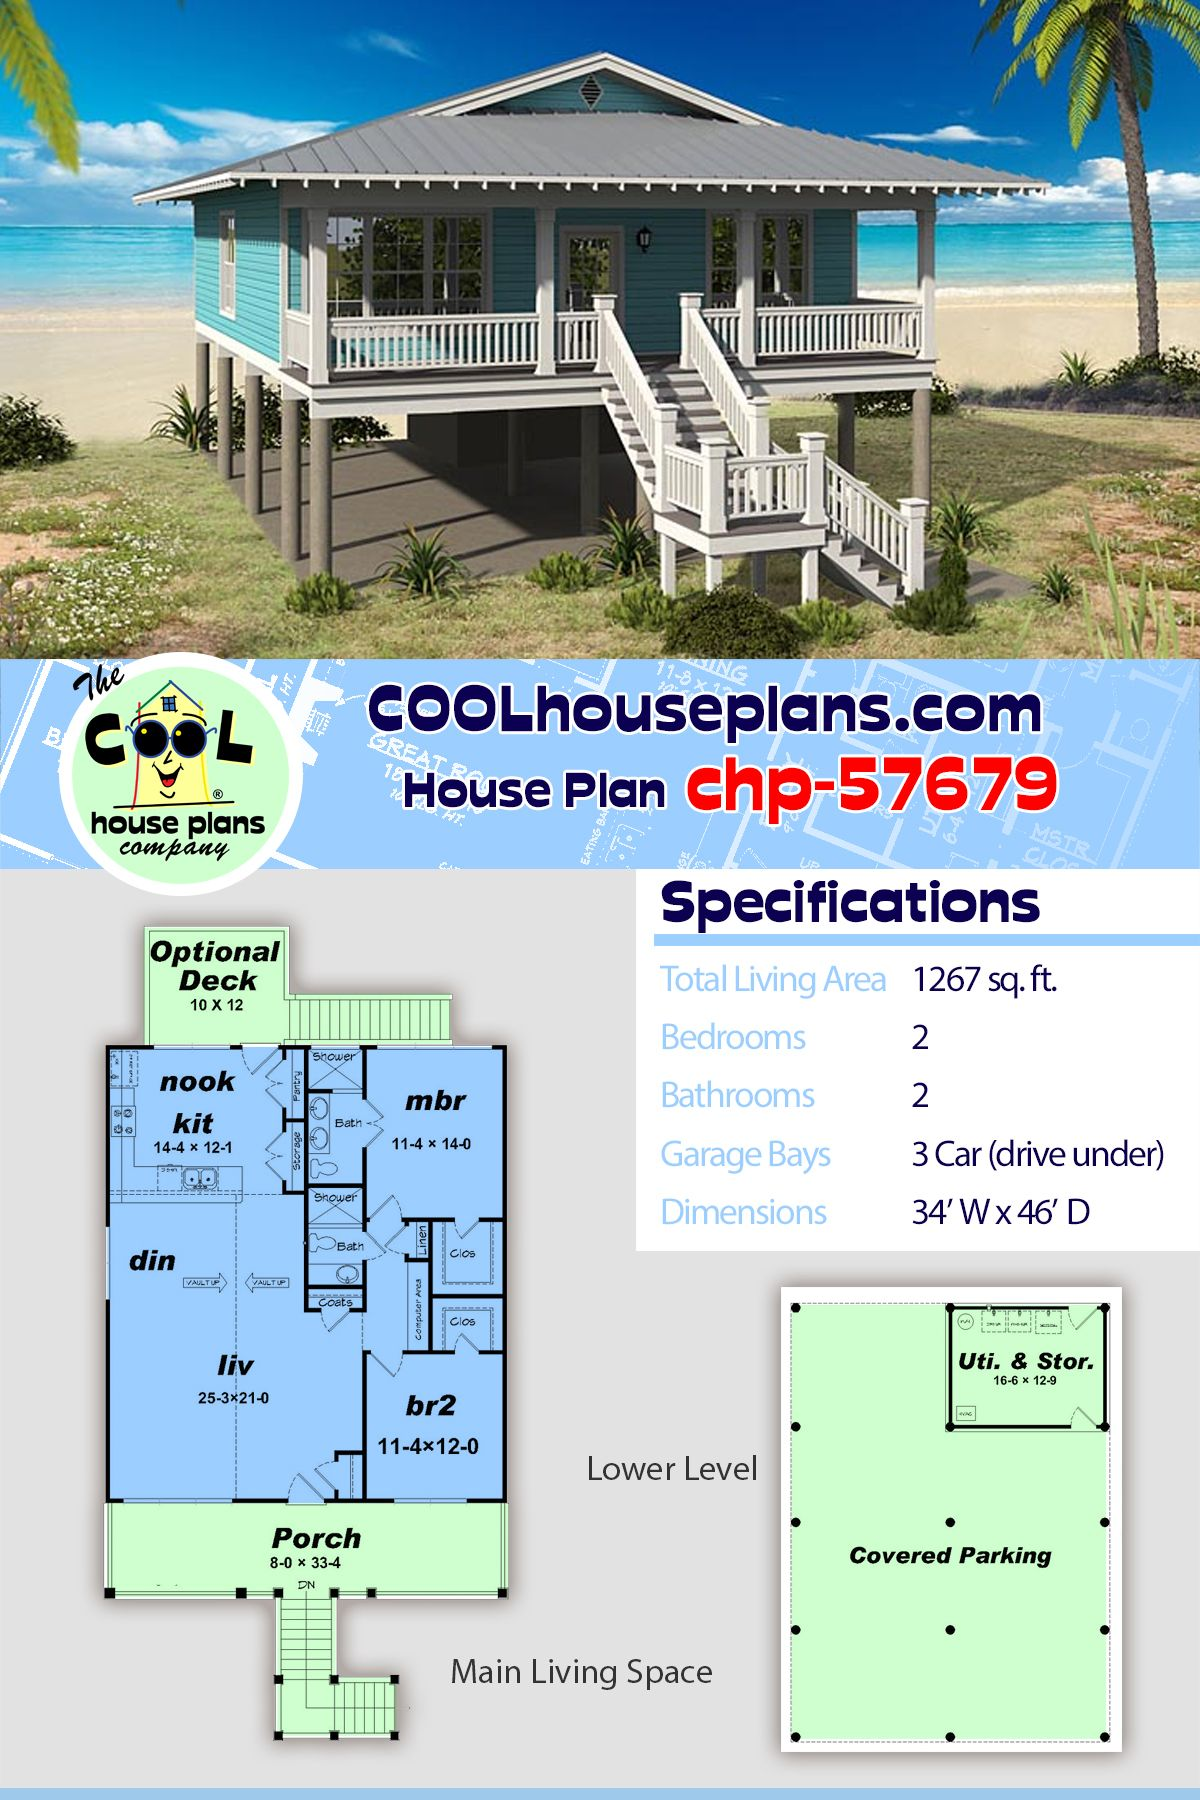 Beach Bungalow Style Home Plan On A Pier Foundation 2 Bedrooms And 2 Bathrooms Beach House Plans Small Beach Houses Beach House Floor Plans